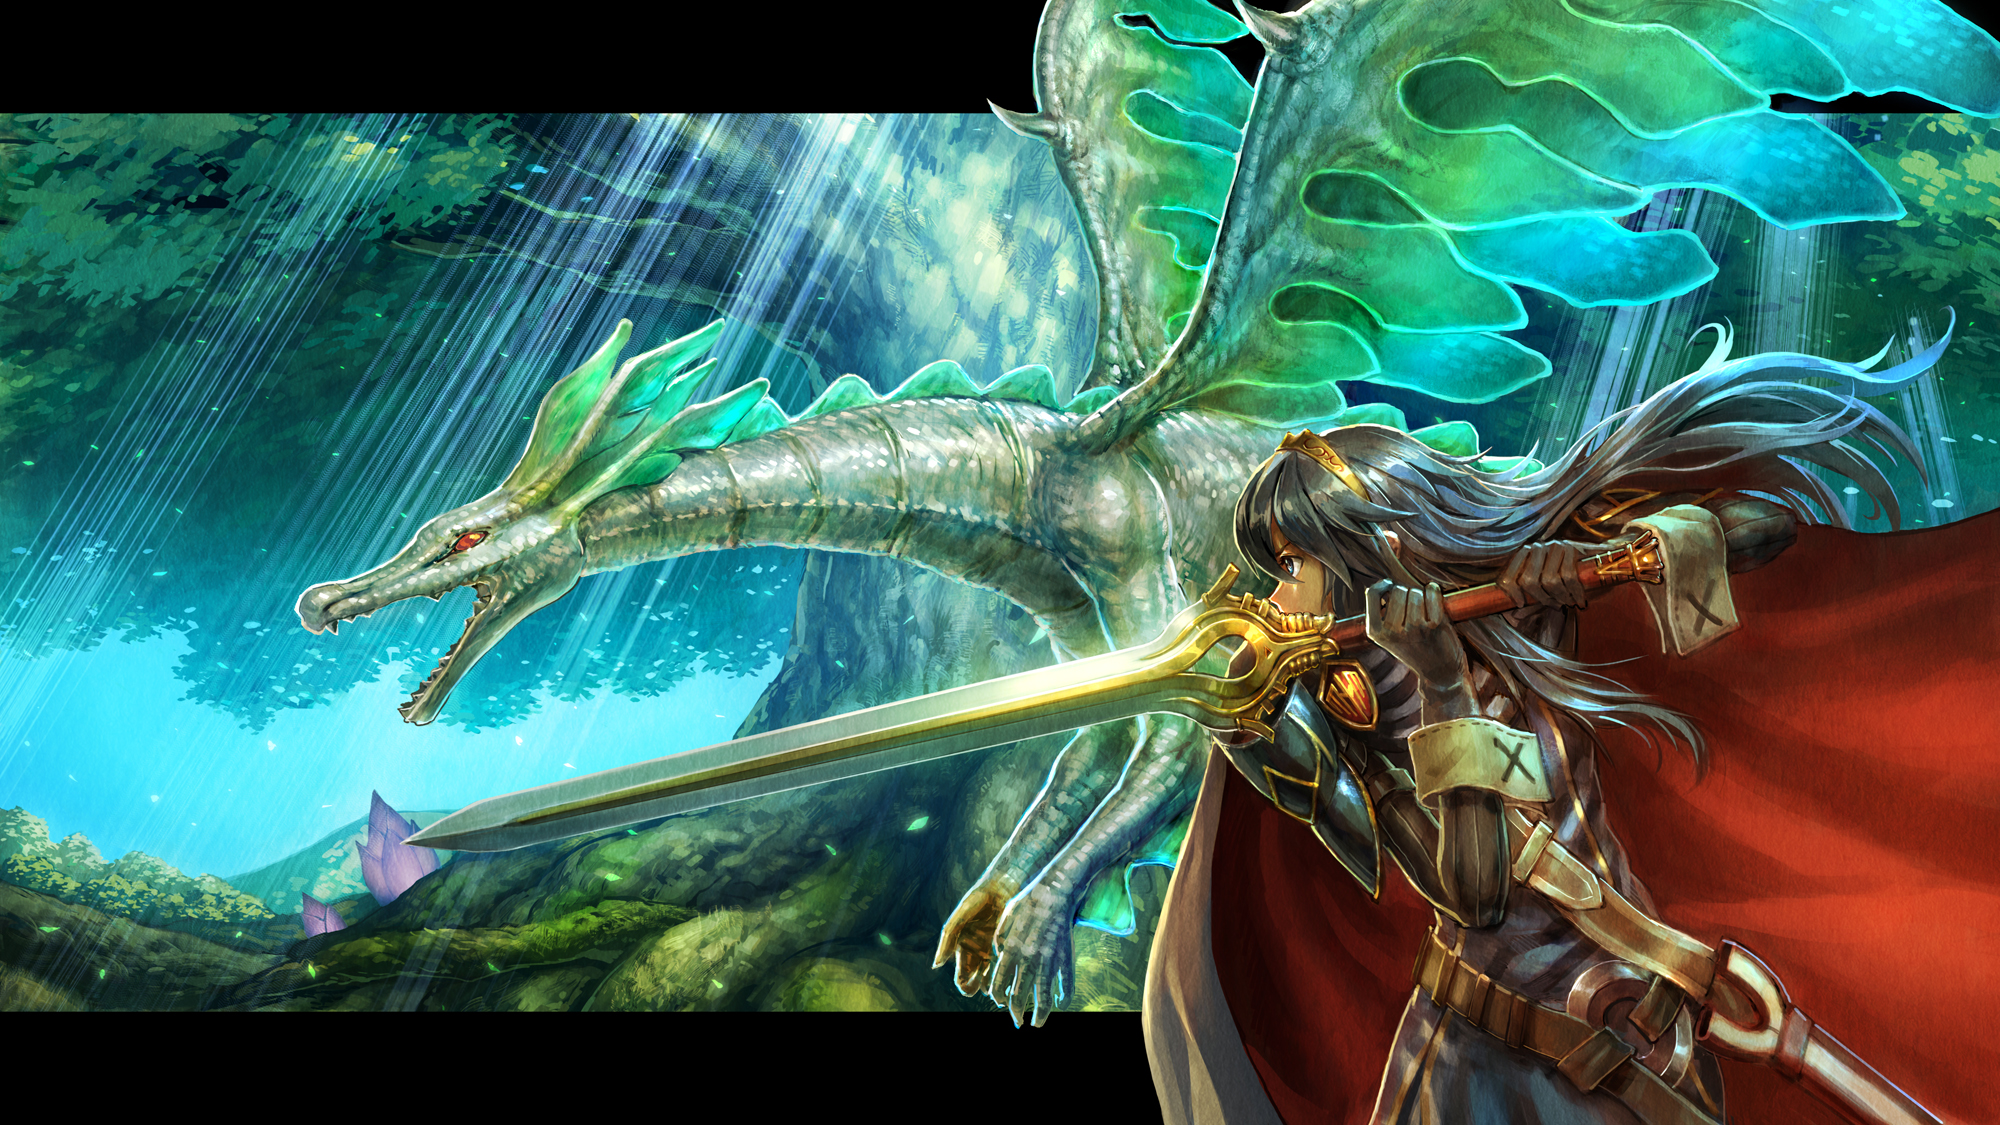 lucina and tiki in dragon form fire emblem know your meme